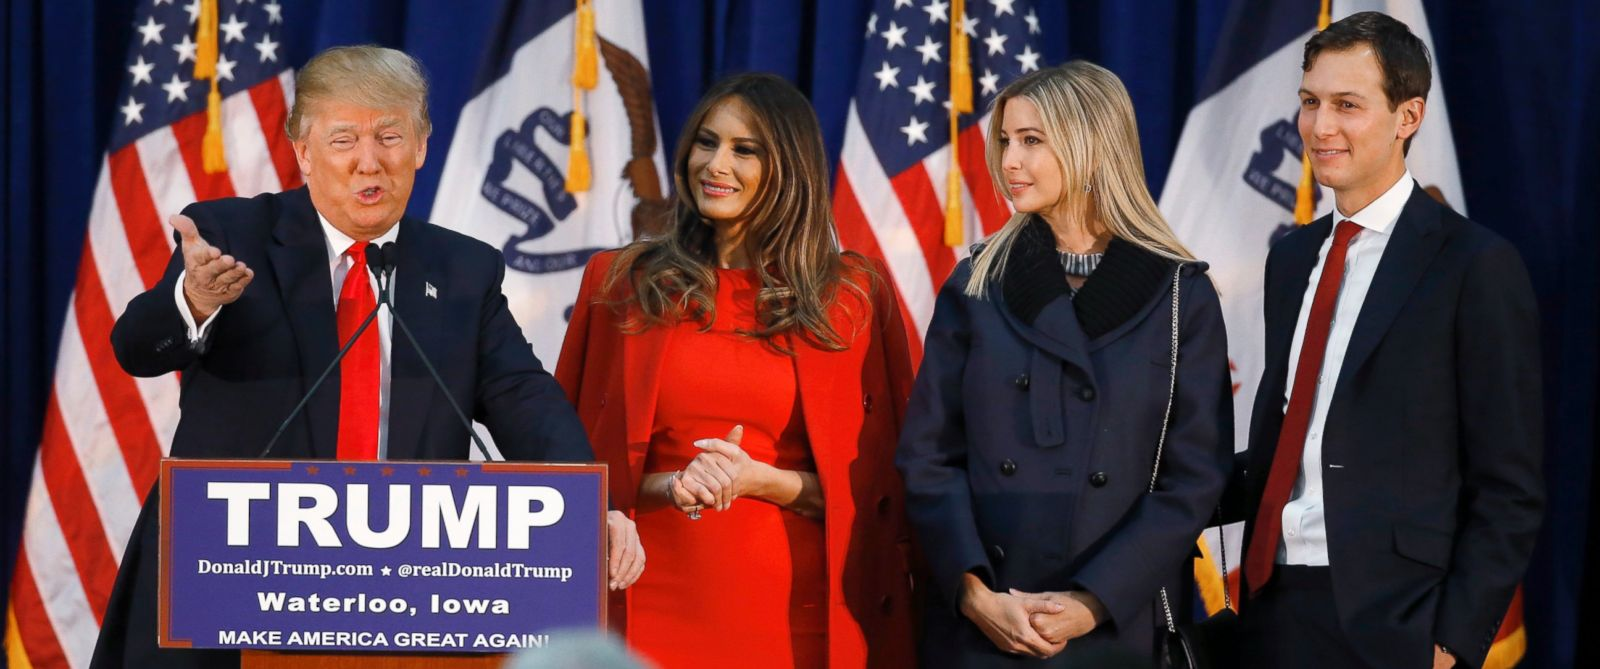 PHOTO: Donald Trump, accompanied by wife Melania, daughter Ivanka, and her husband Jared Kushner, speaks during a campaign event in Waterloo, Iowa, Feb. 1, 2016.